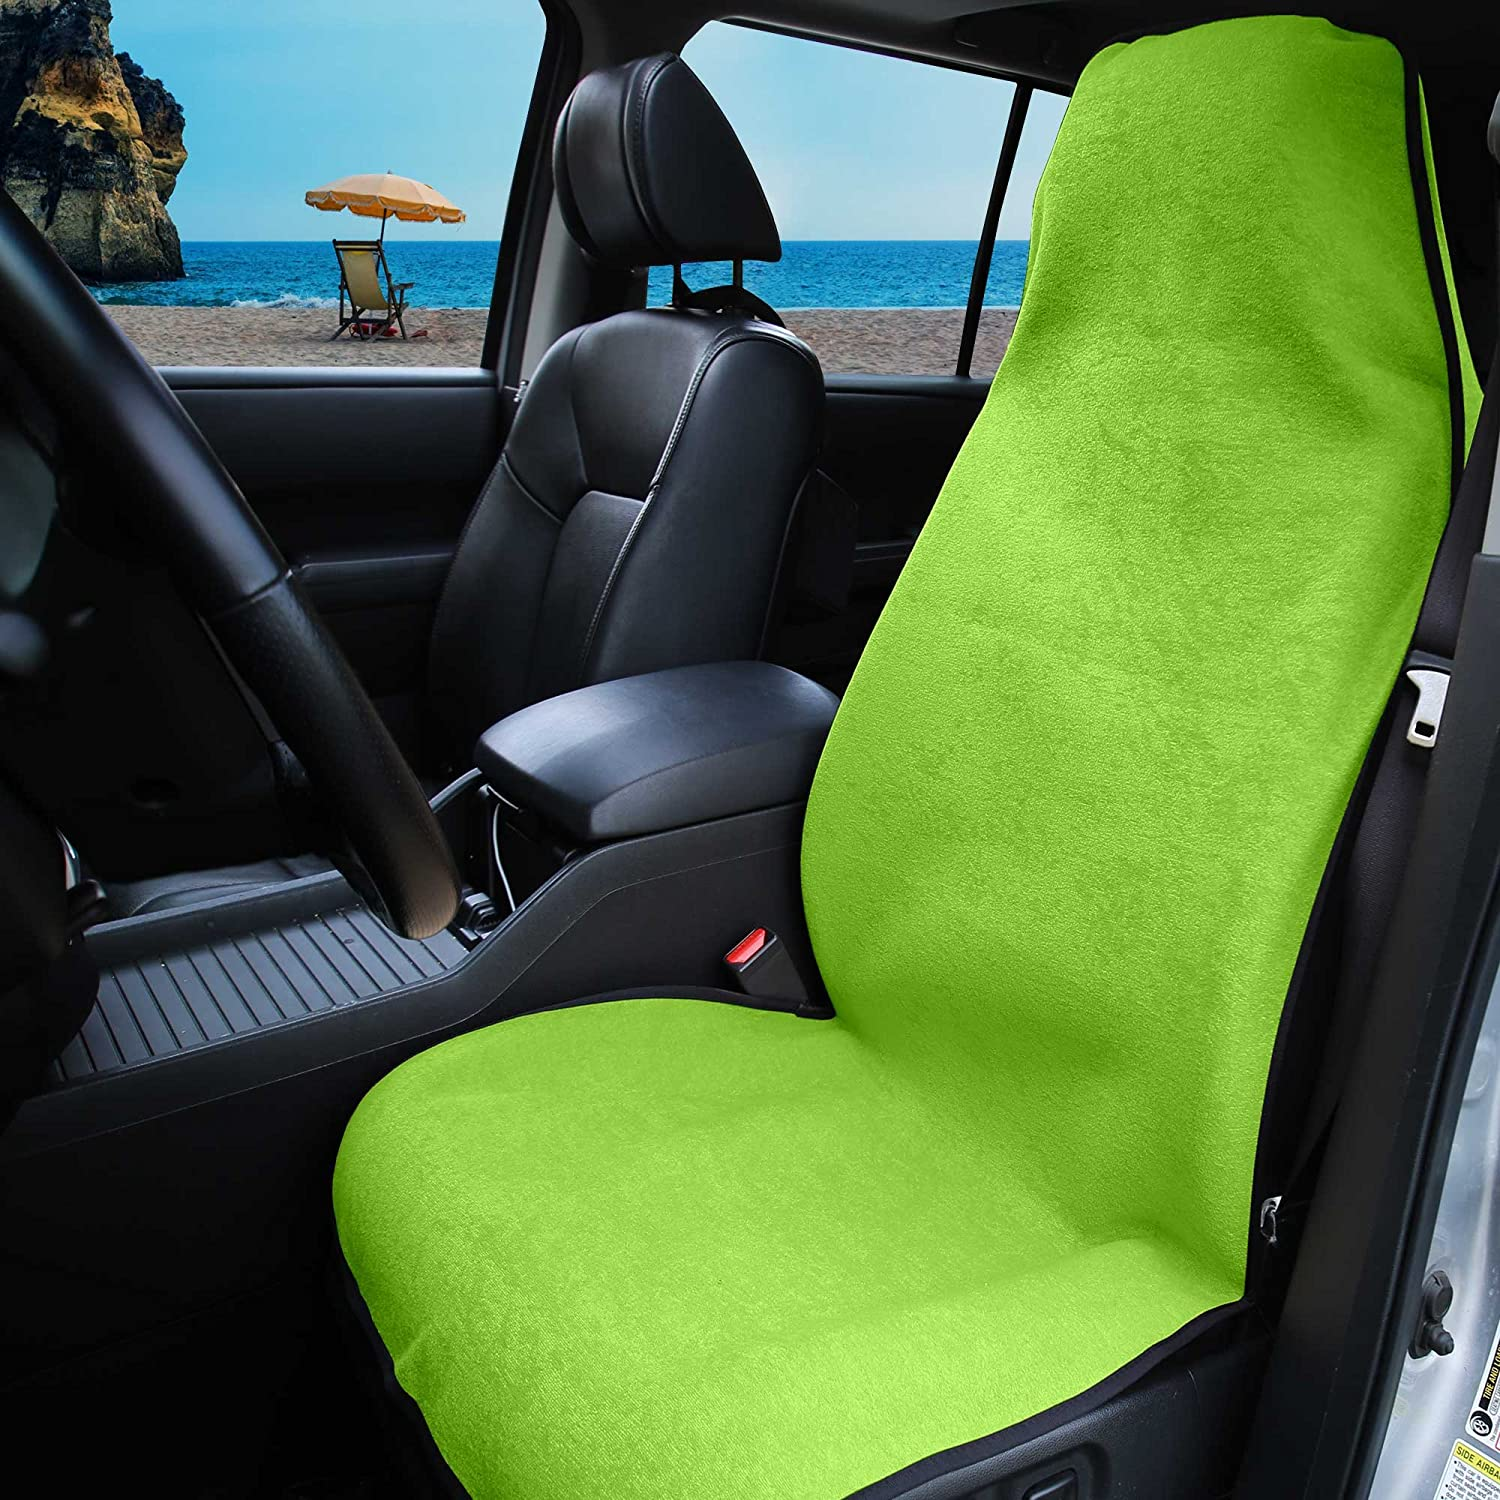 FH Group FH1006 Multifunctional Beach, Fitness Towel Car Seat Cover (Green) One Cover – Universal Fit for Cars, Trucks & SUVs